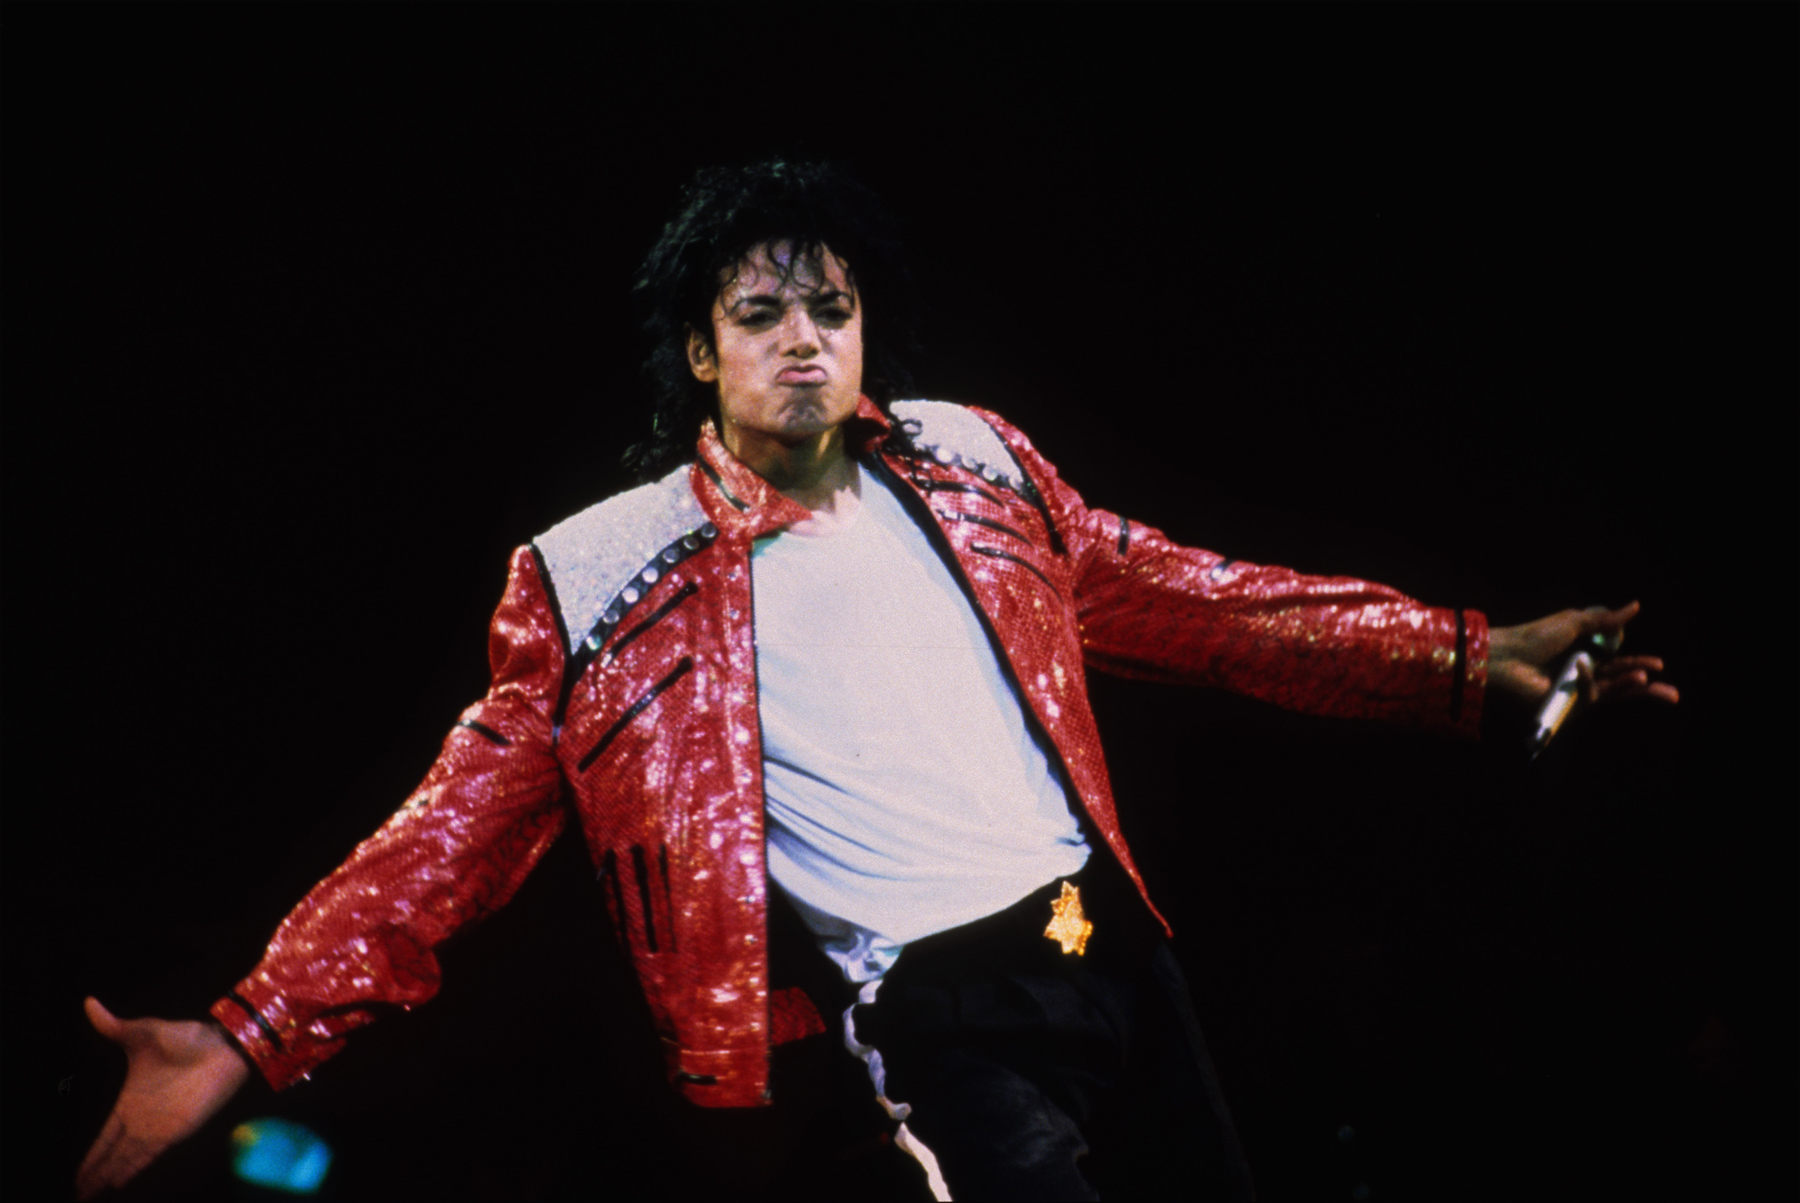 Michael Jackson's 20 Greatest Videos: The Stories Behind the